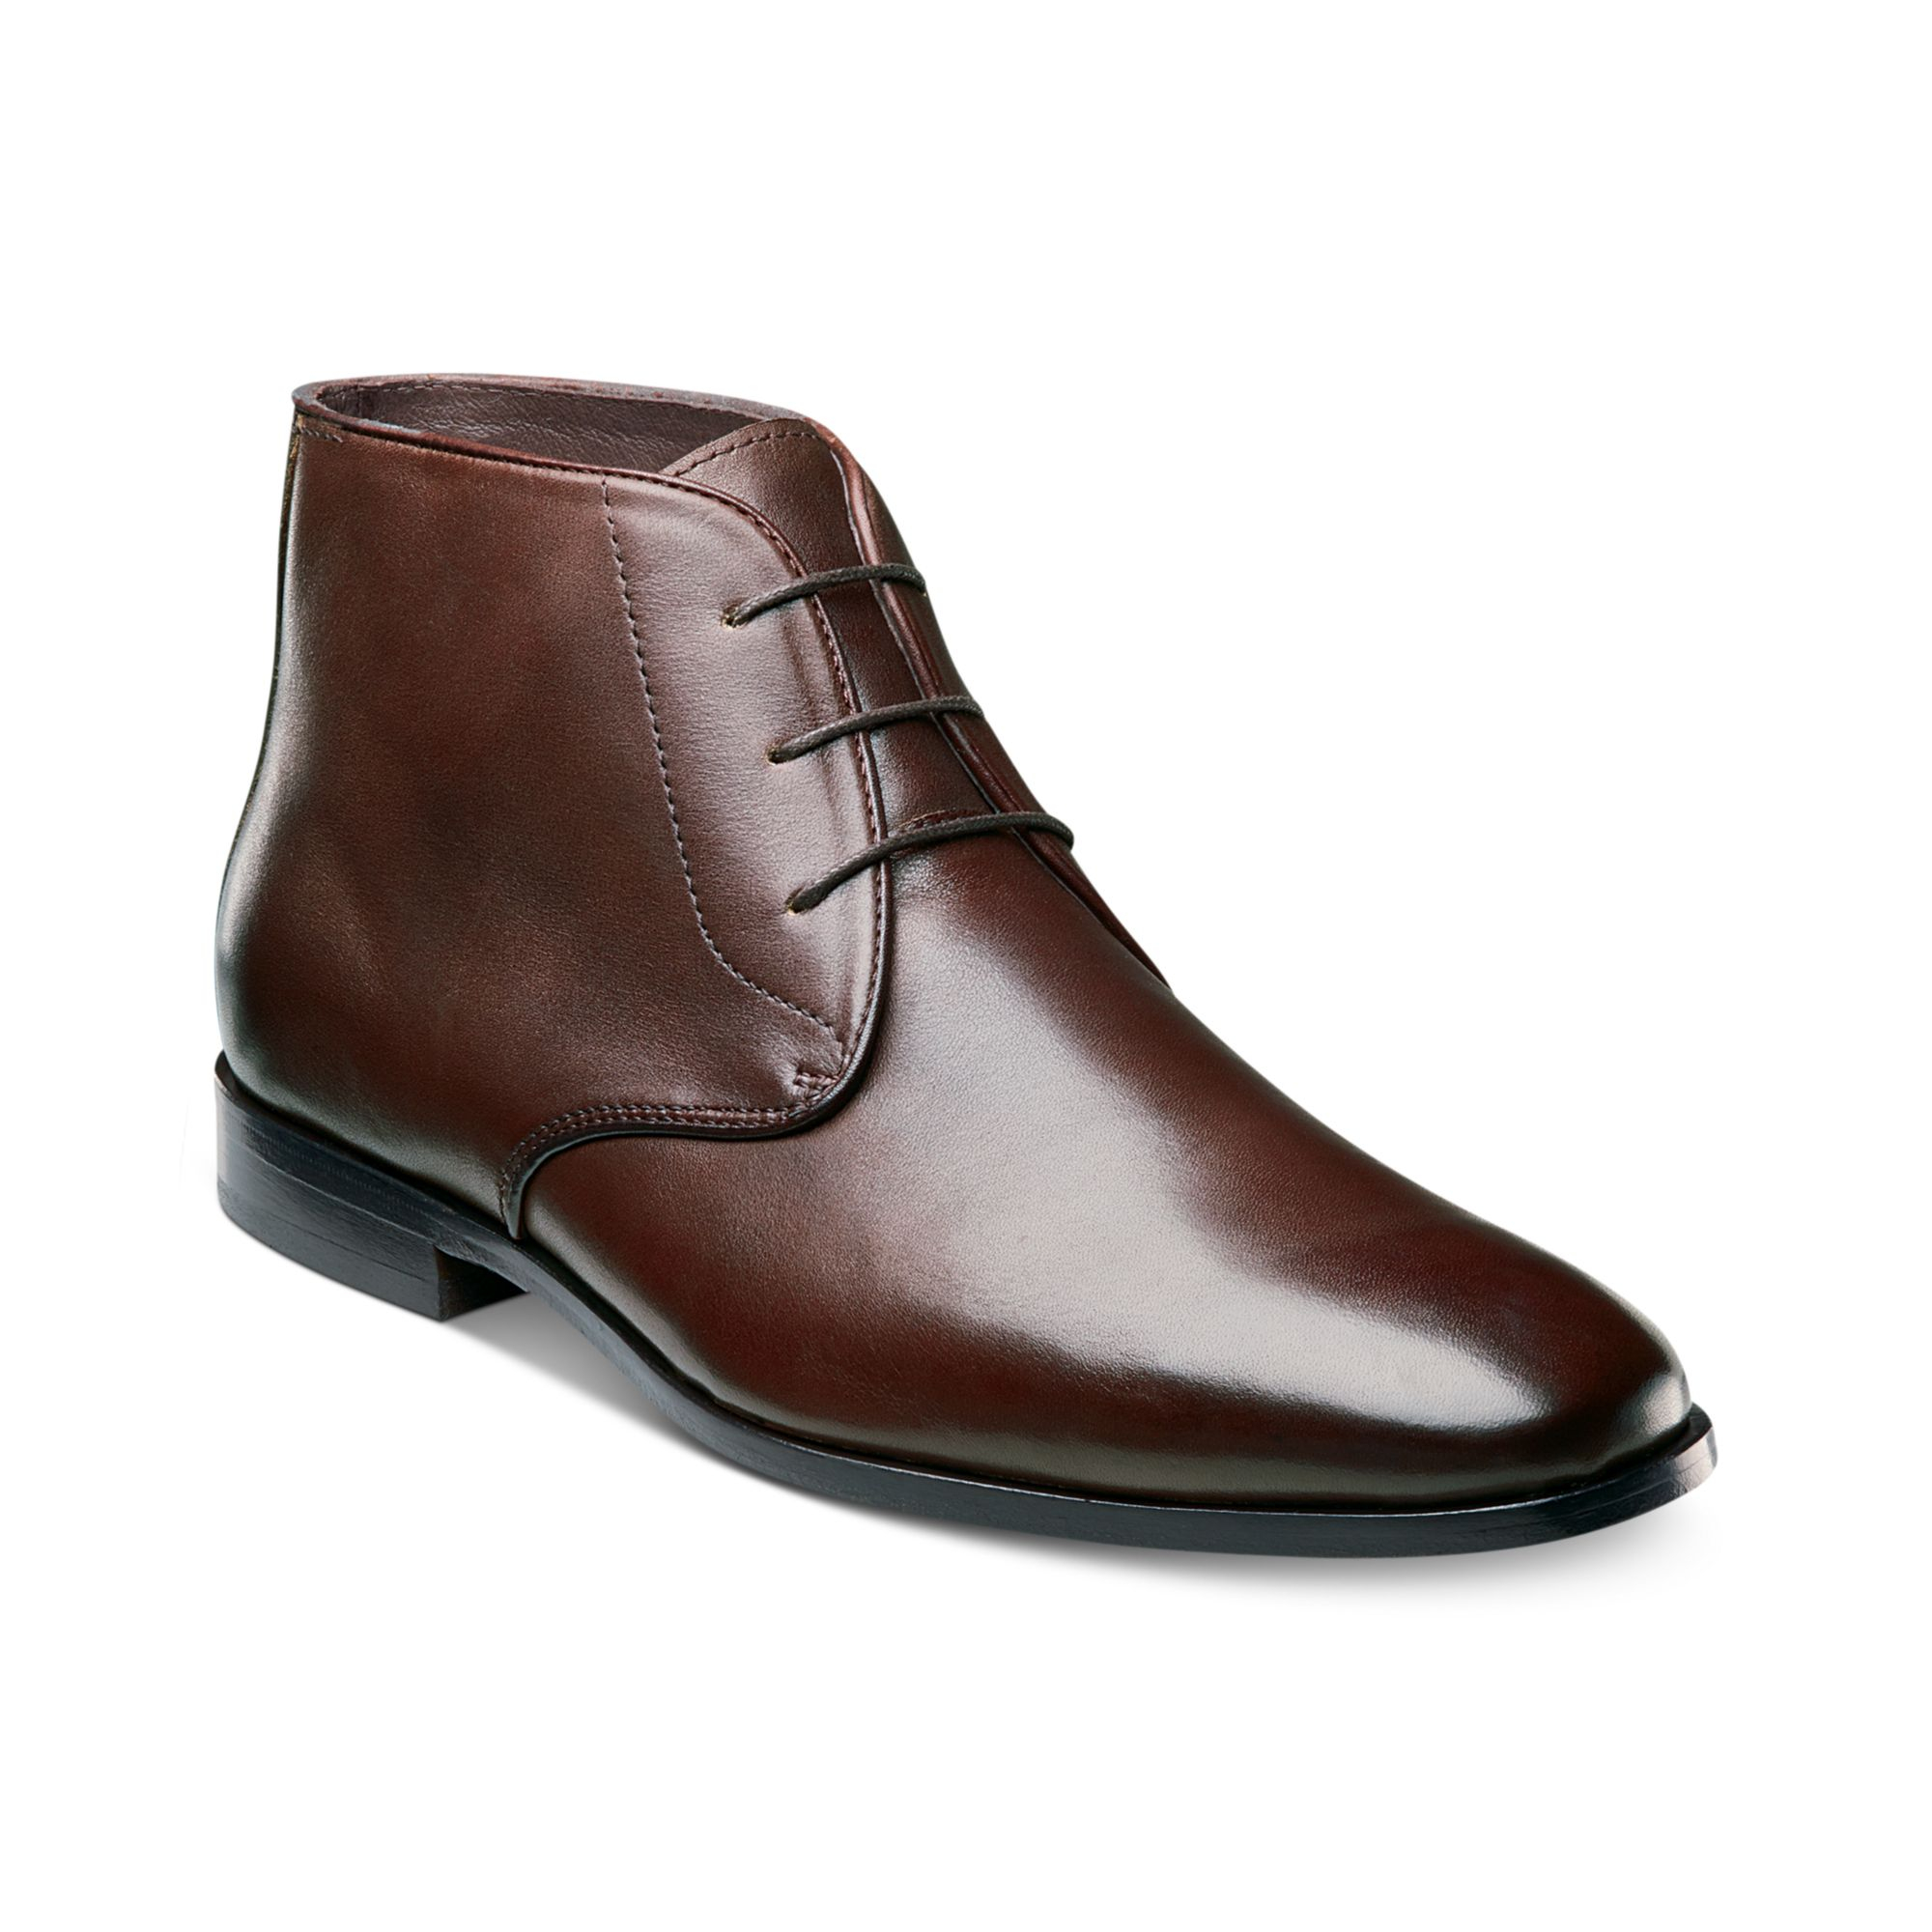 Florsheim Dress Shoes For Sale